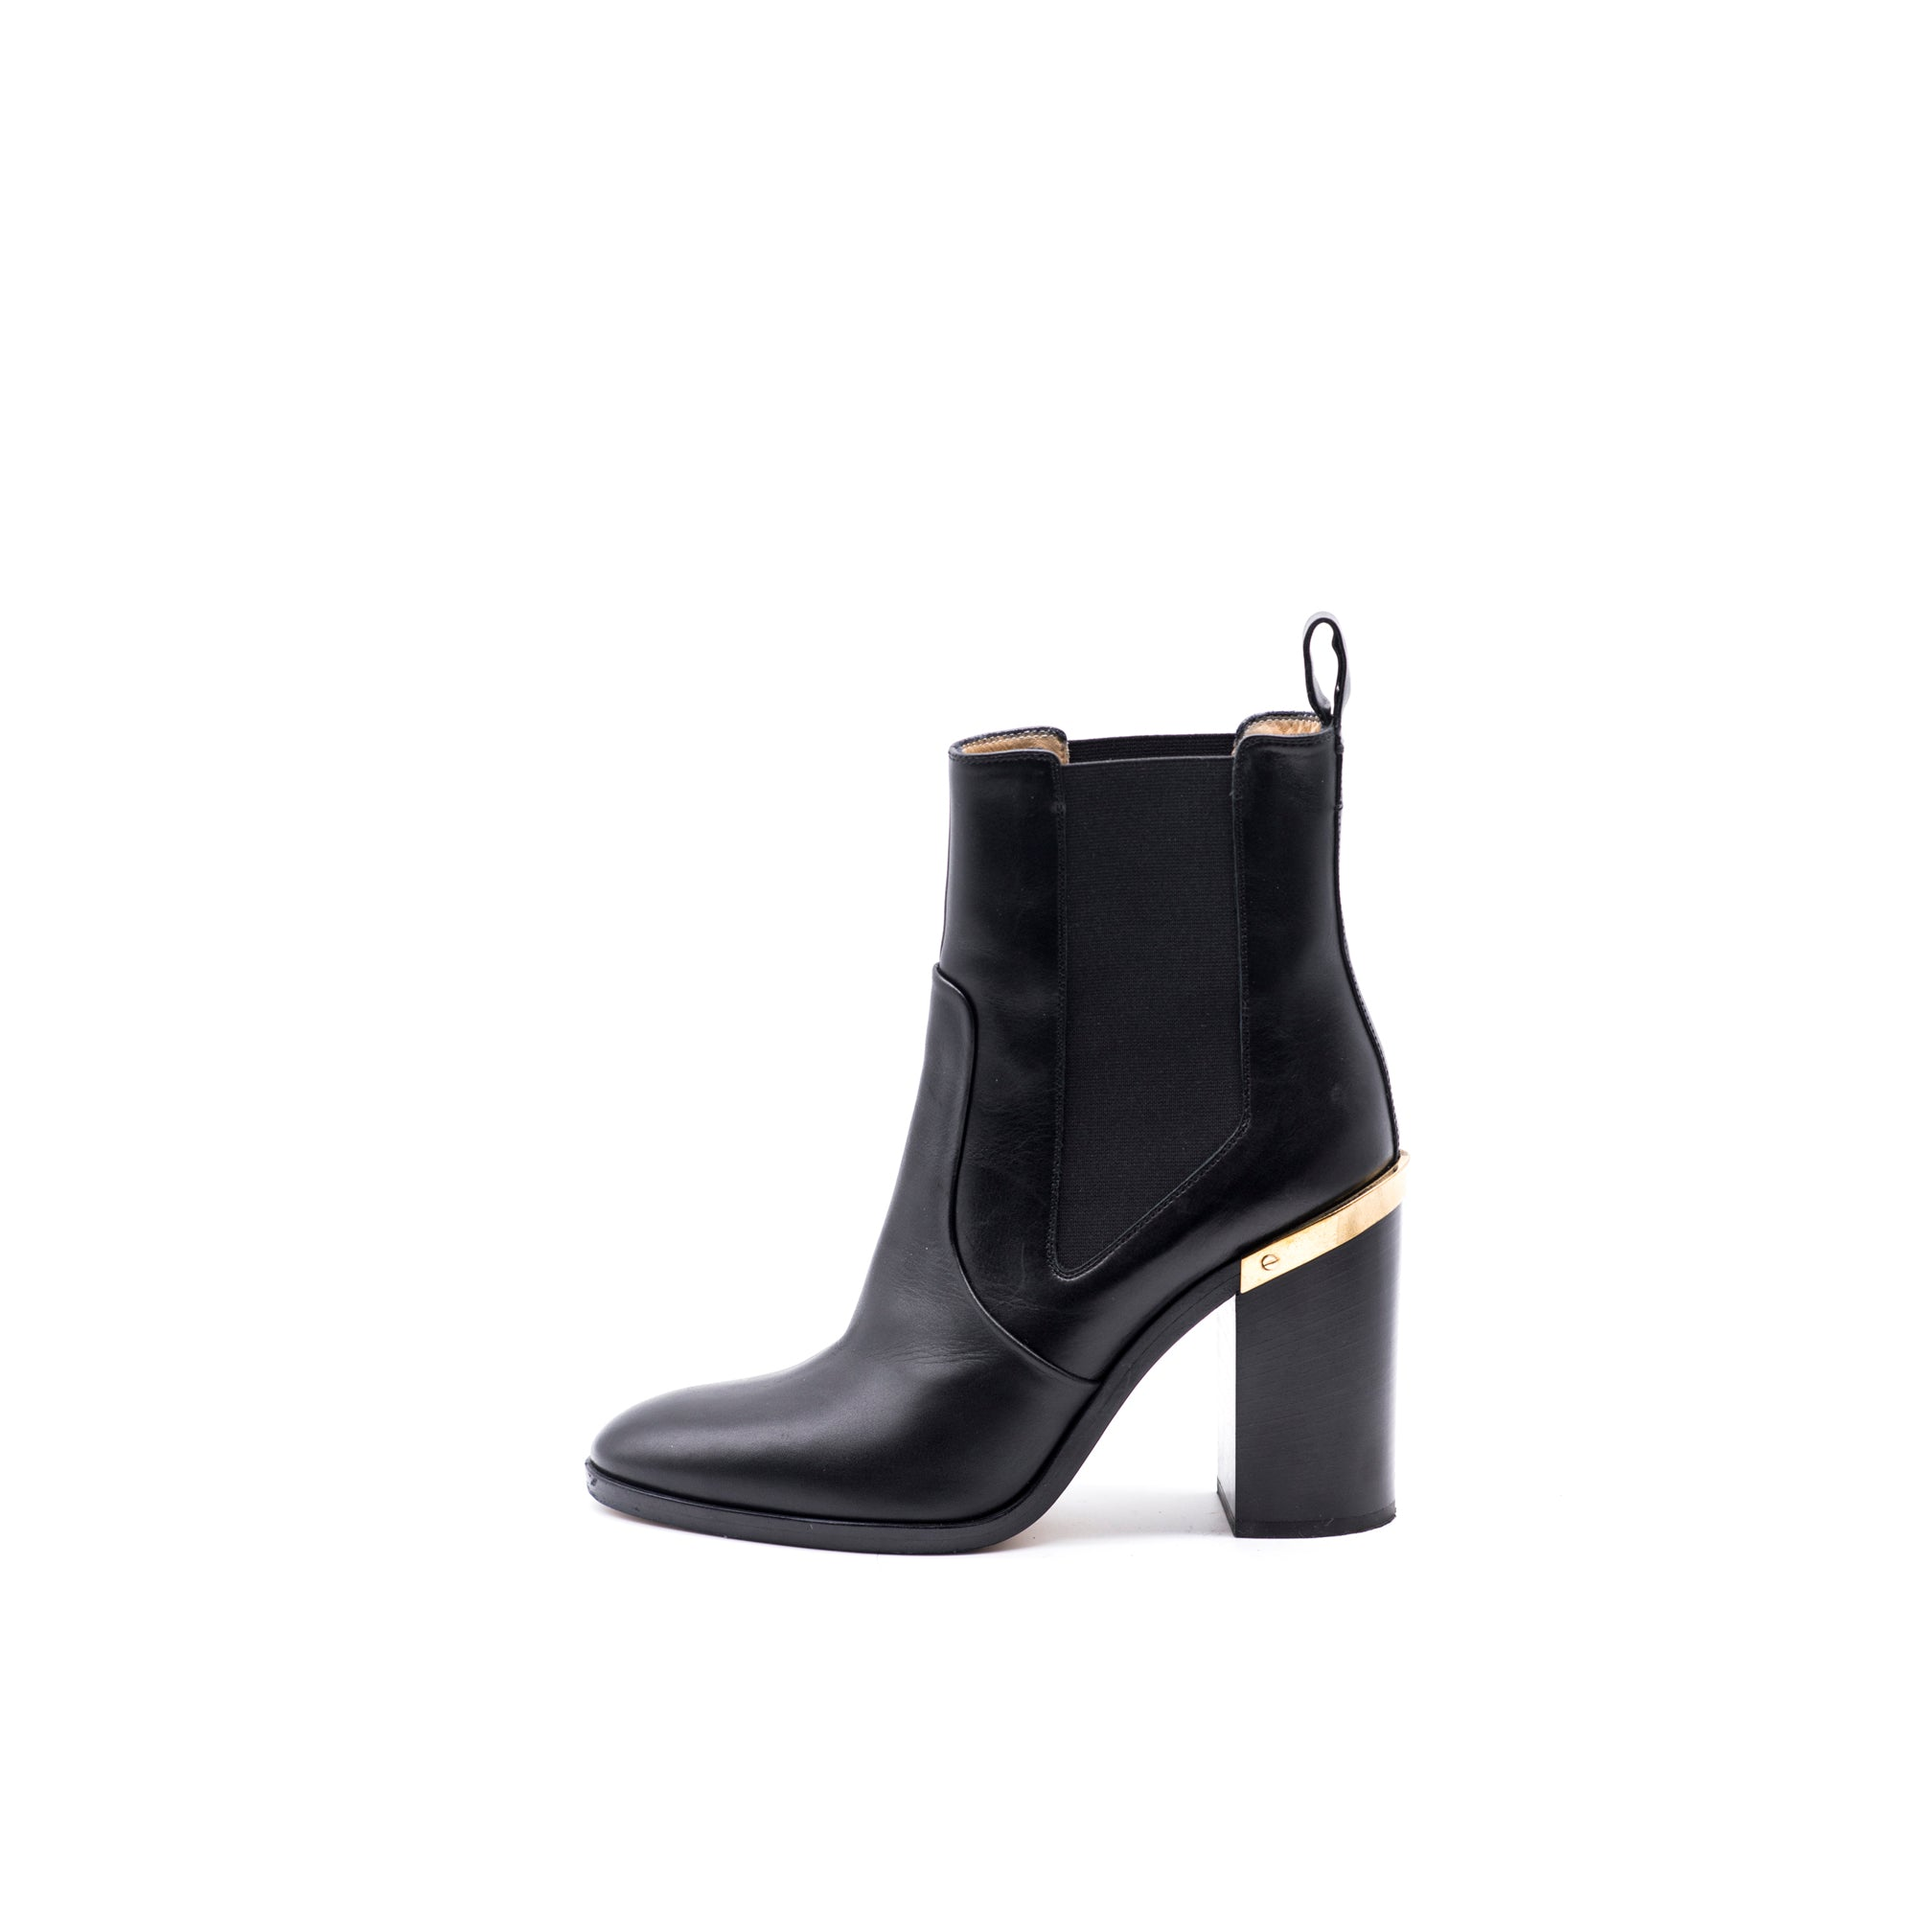 102243a91ae REED KRAKOFF Black Leather Gold Tone Metal Plate Stacked Heel Ankle Boots 39